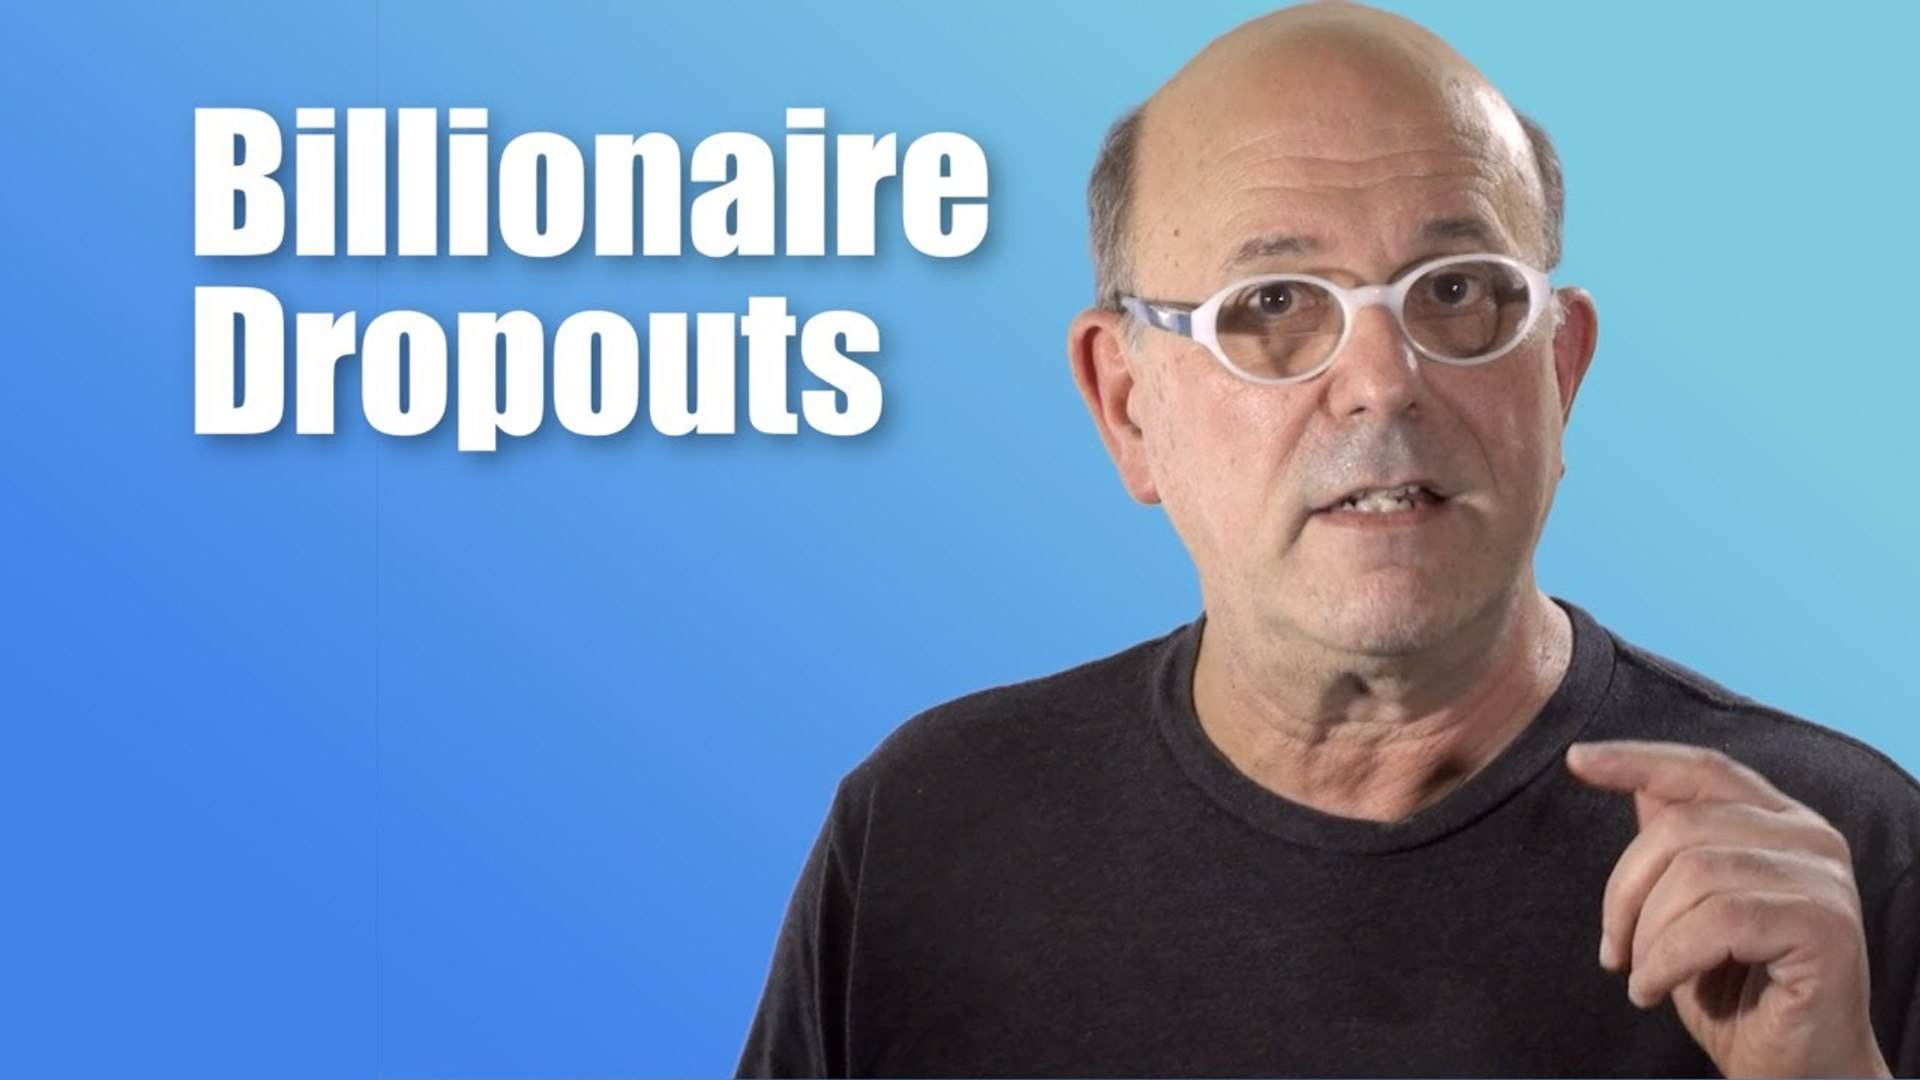 Billionaires Dropouts - High School Dropouts Who Made Billions and Became Billionaires of the World